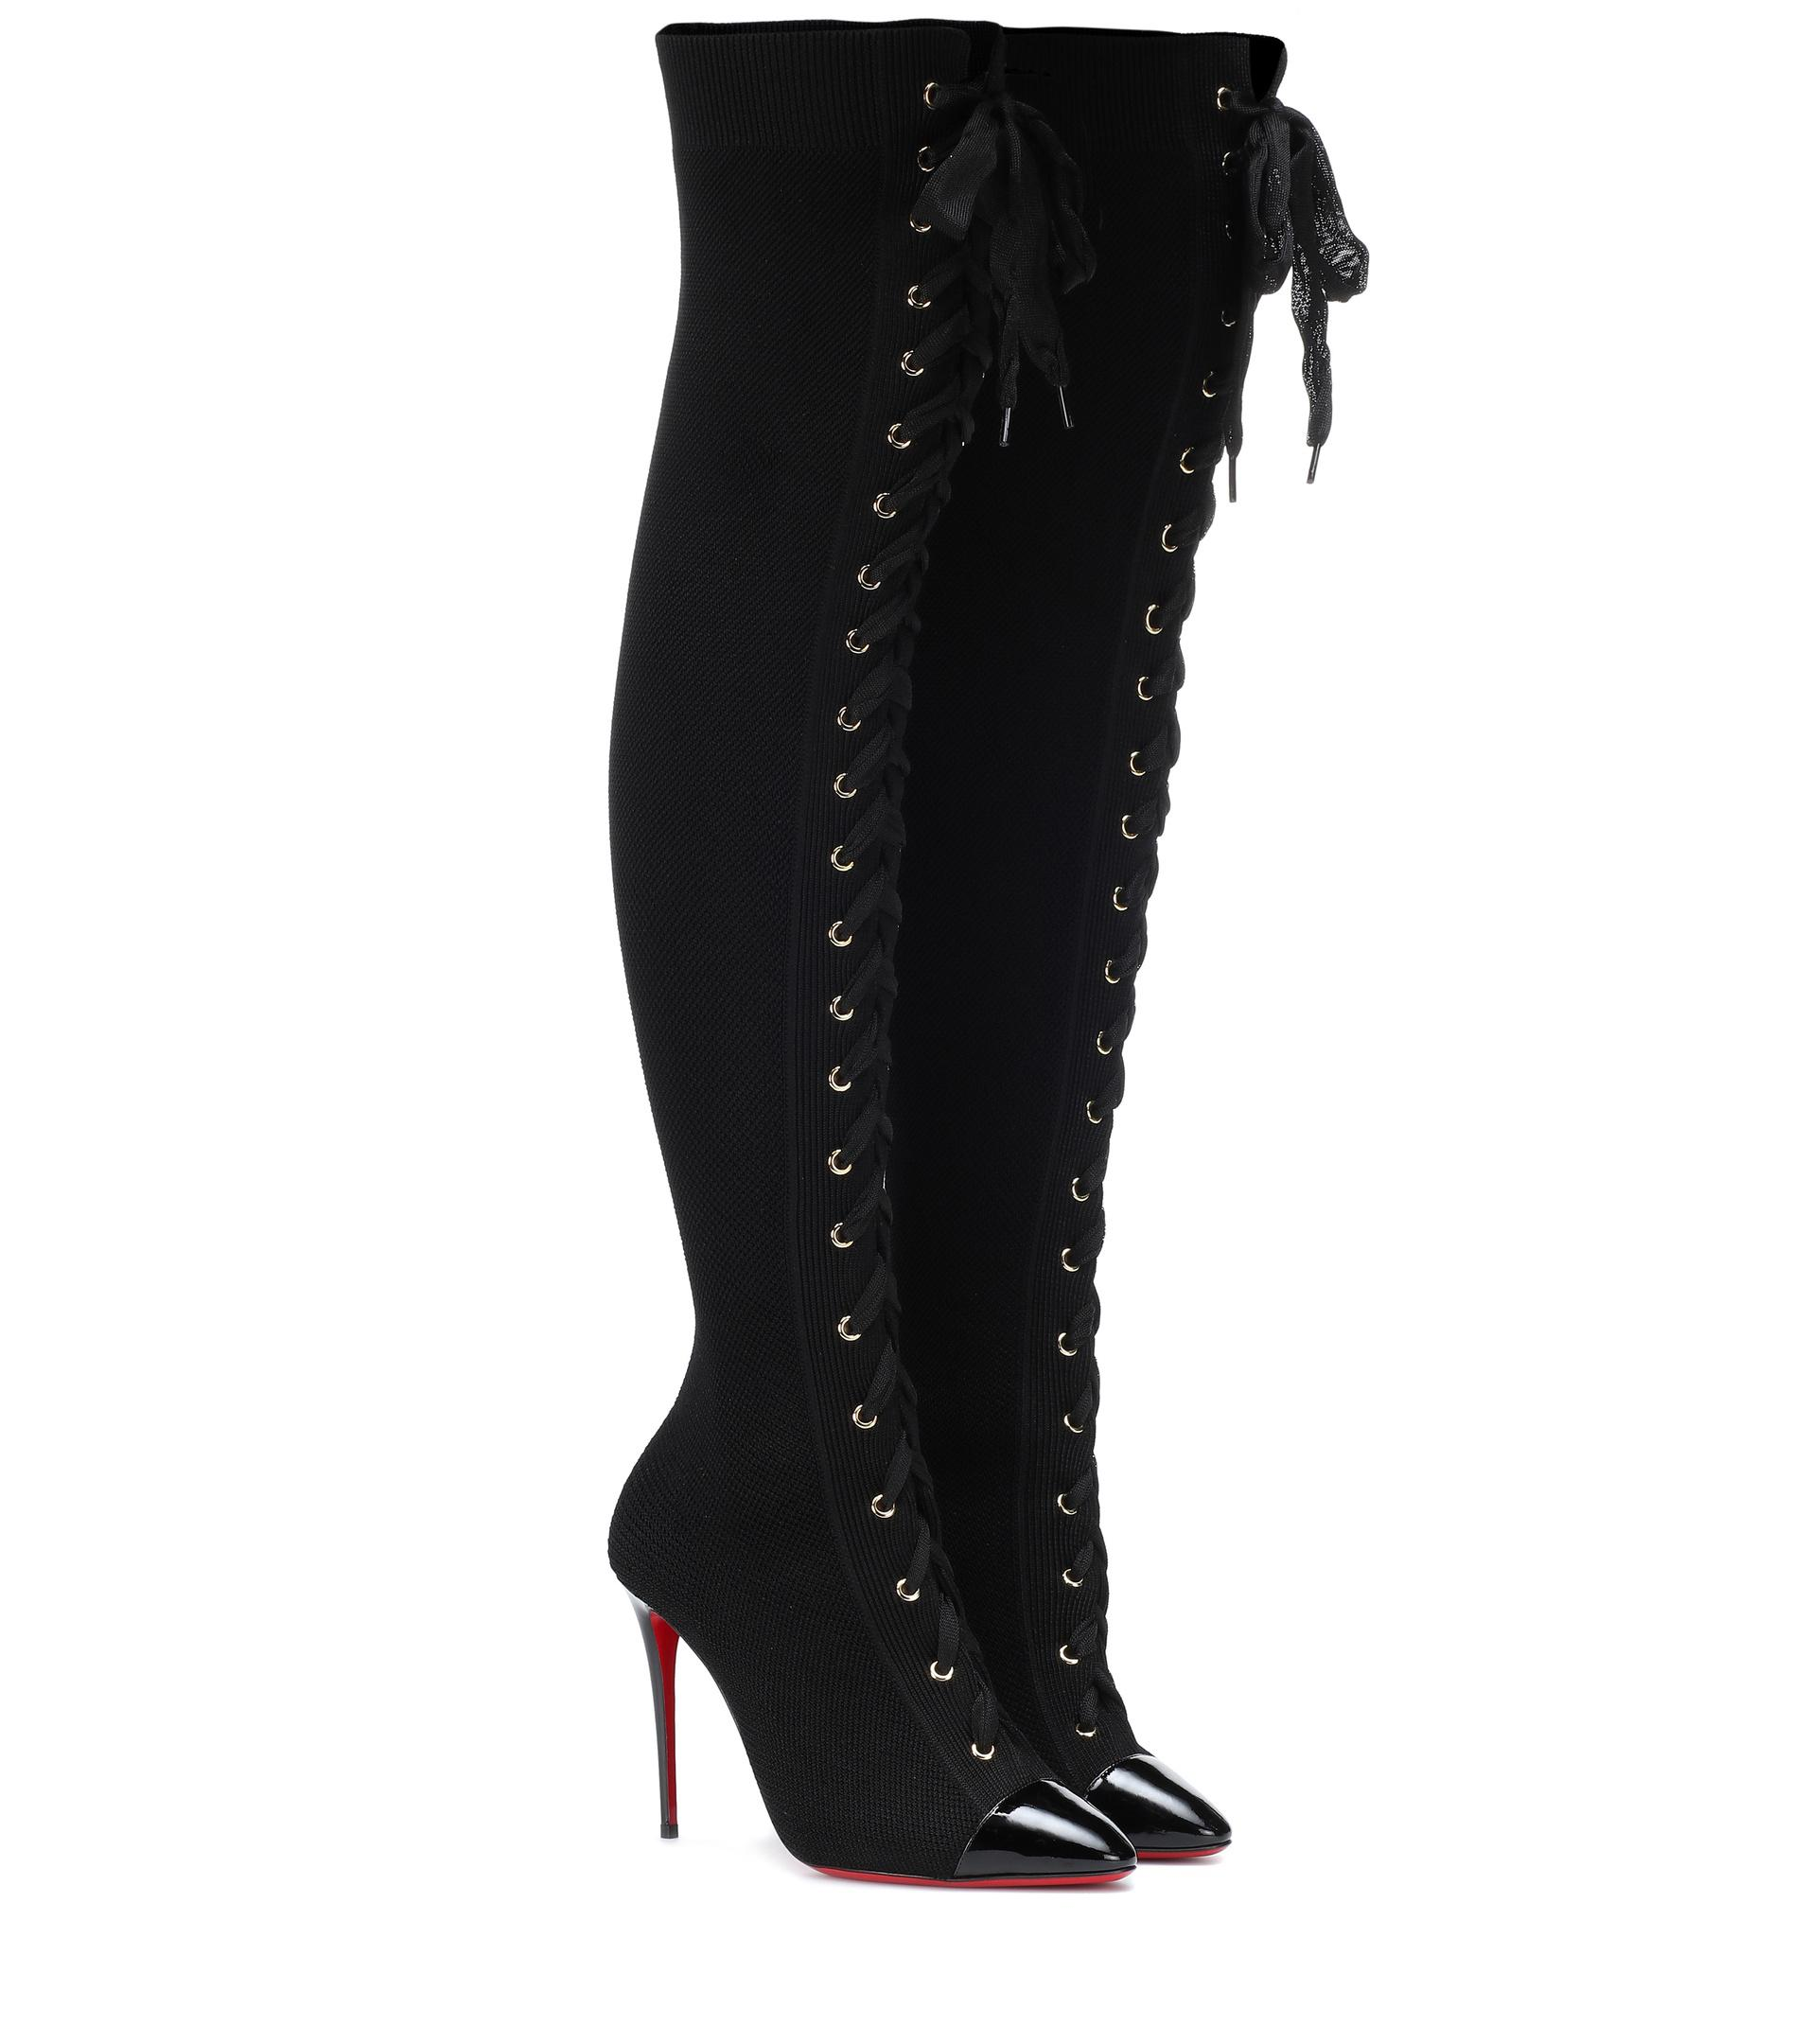 promo code a15fb 9b597 Women's Black Frenchie 100 Over-the-knee Boots